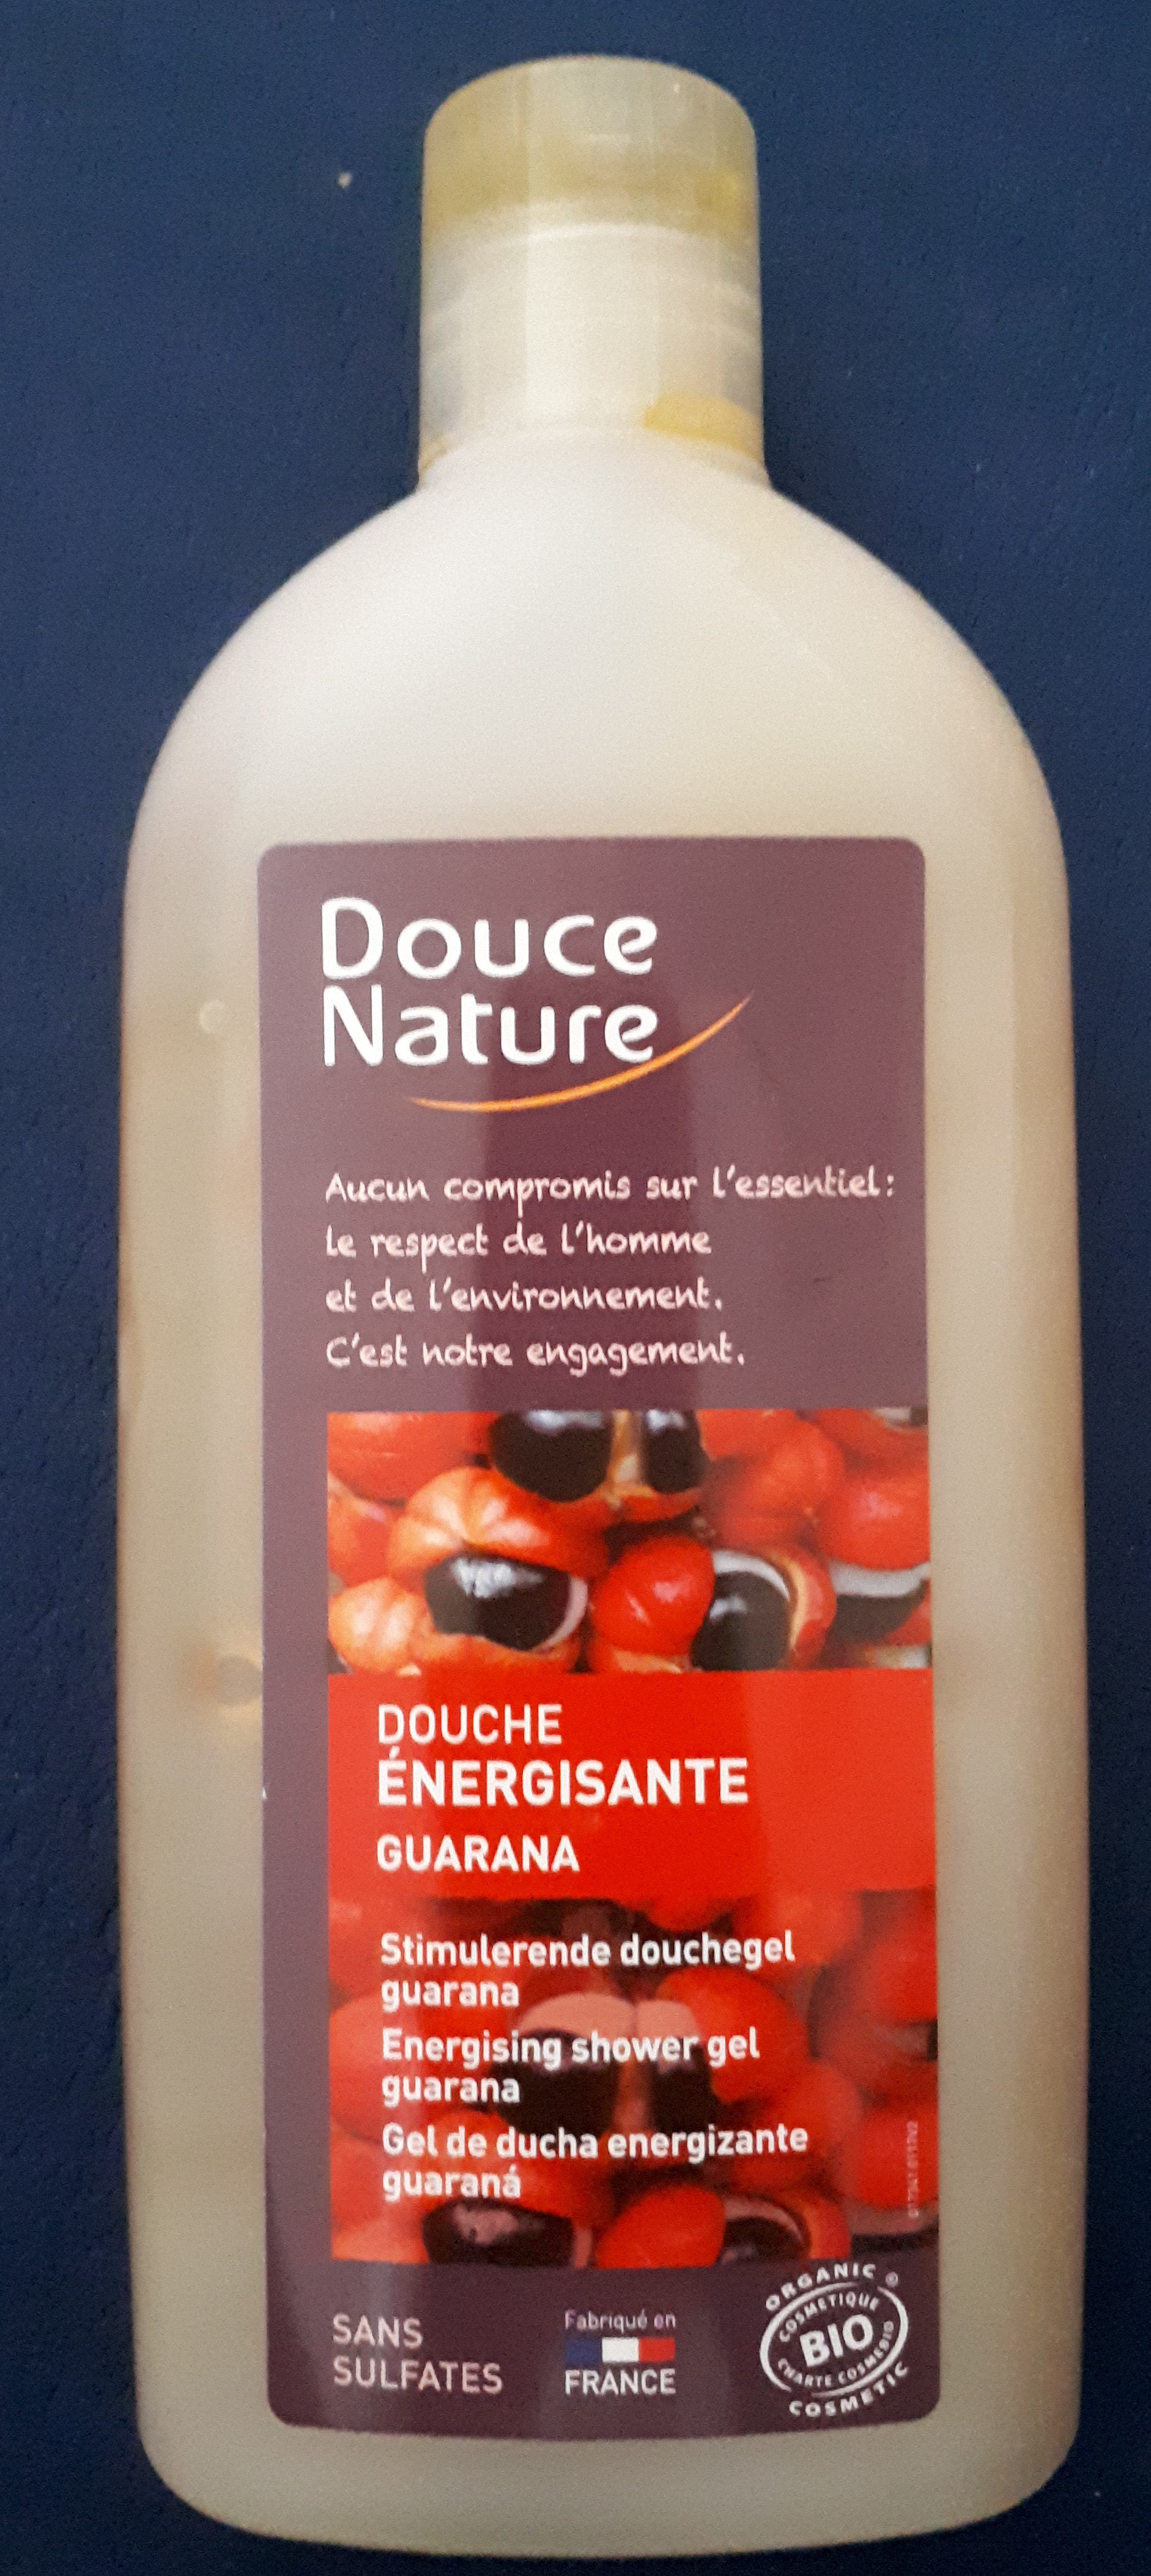 Douche énergisante guarana - Product - fr